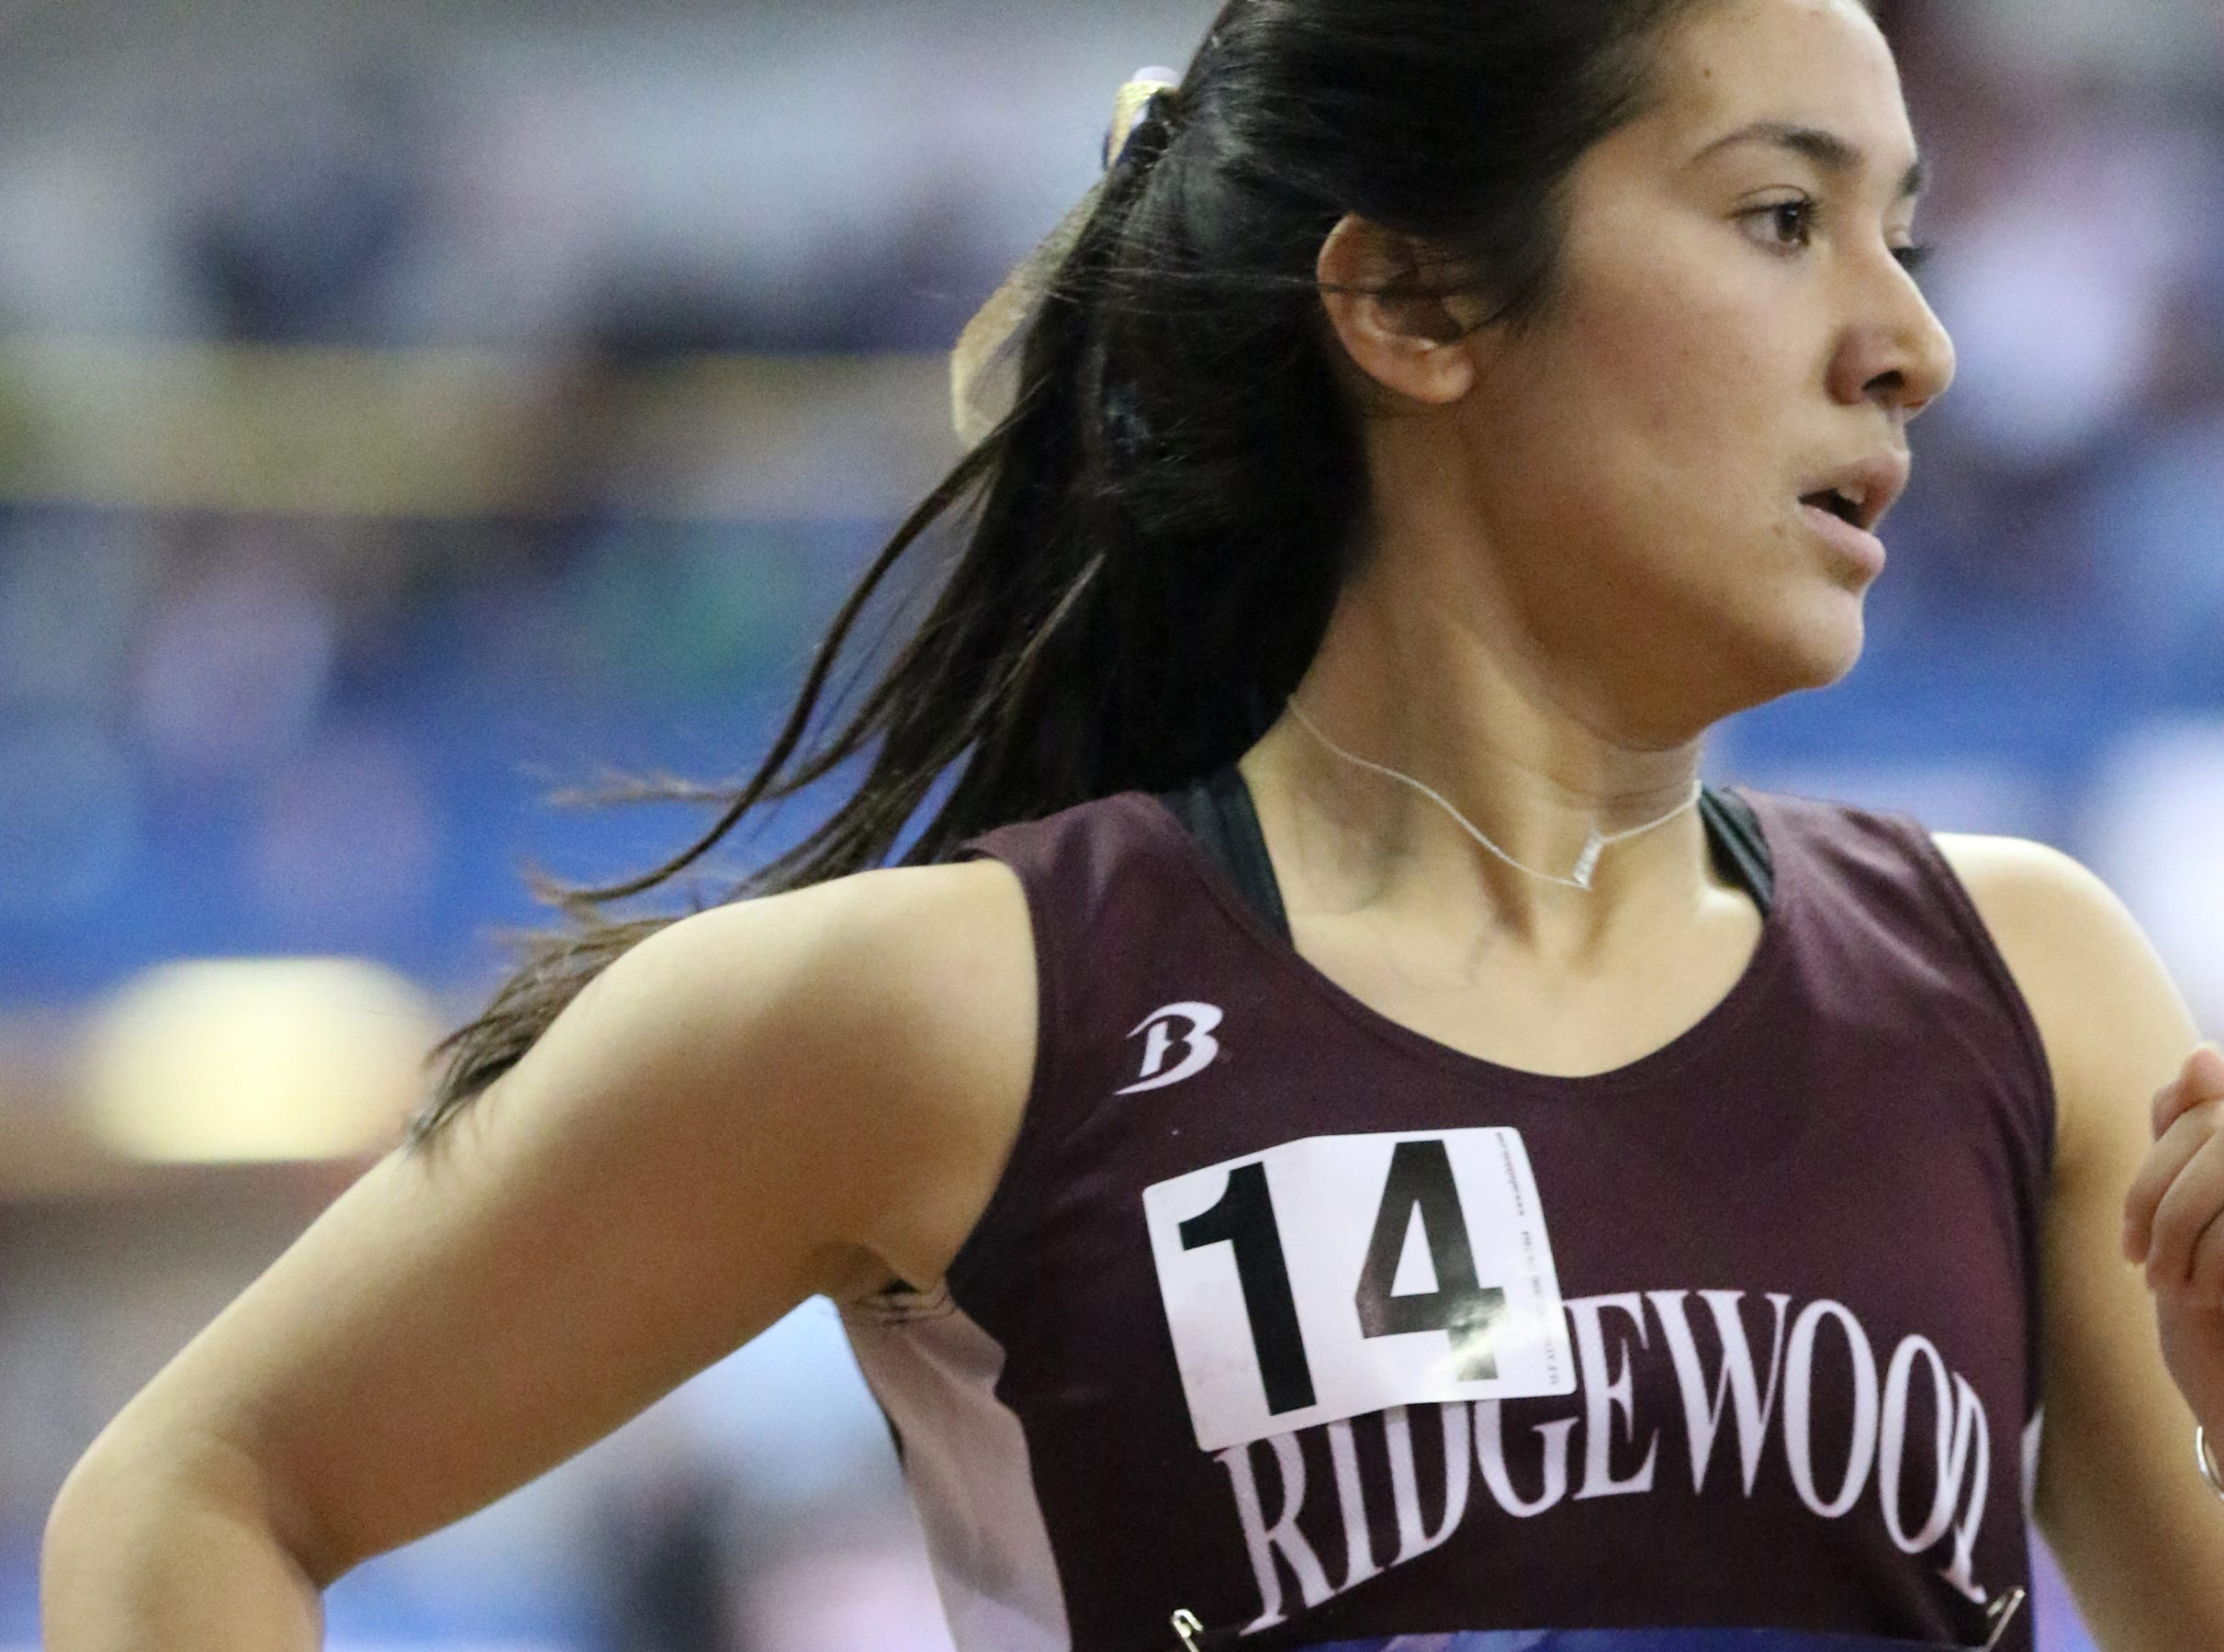 Katherine Muccio runs the second leg of the 4x800 meters for Ridgewood. Saturday, February 9, 2019